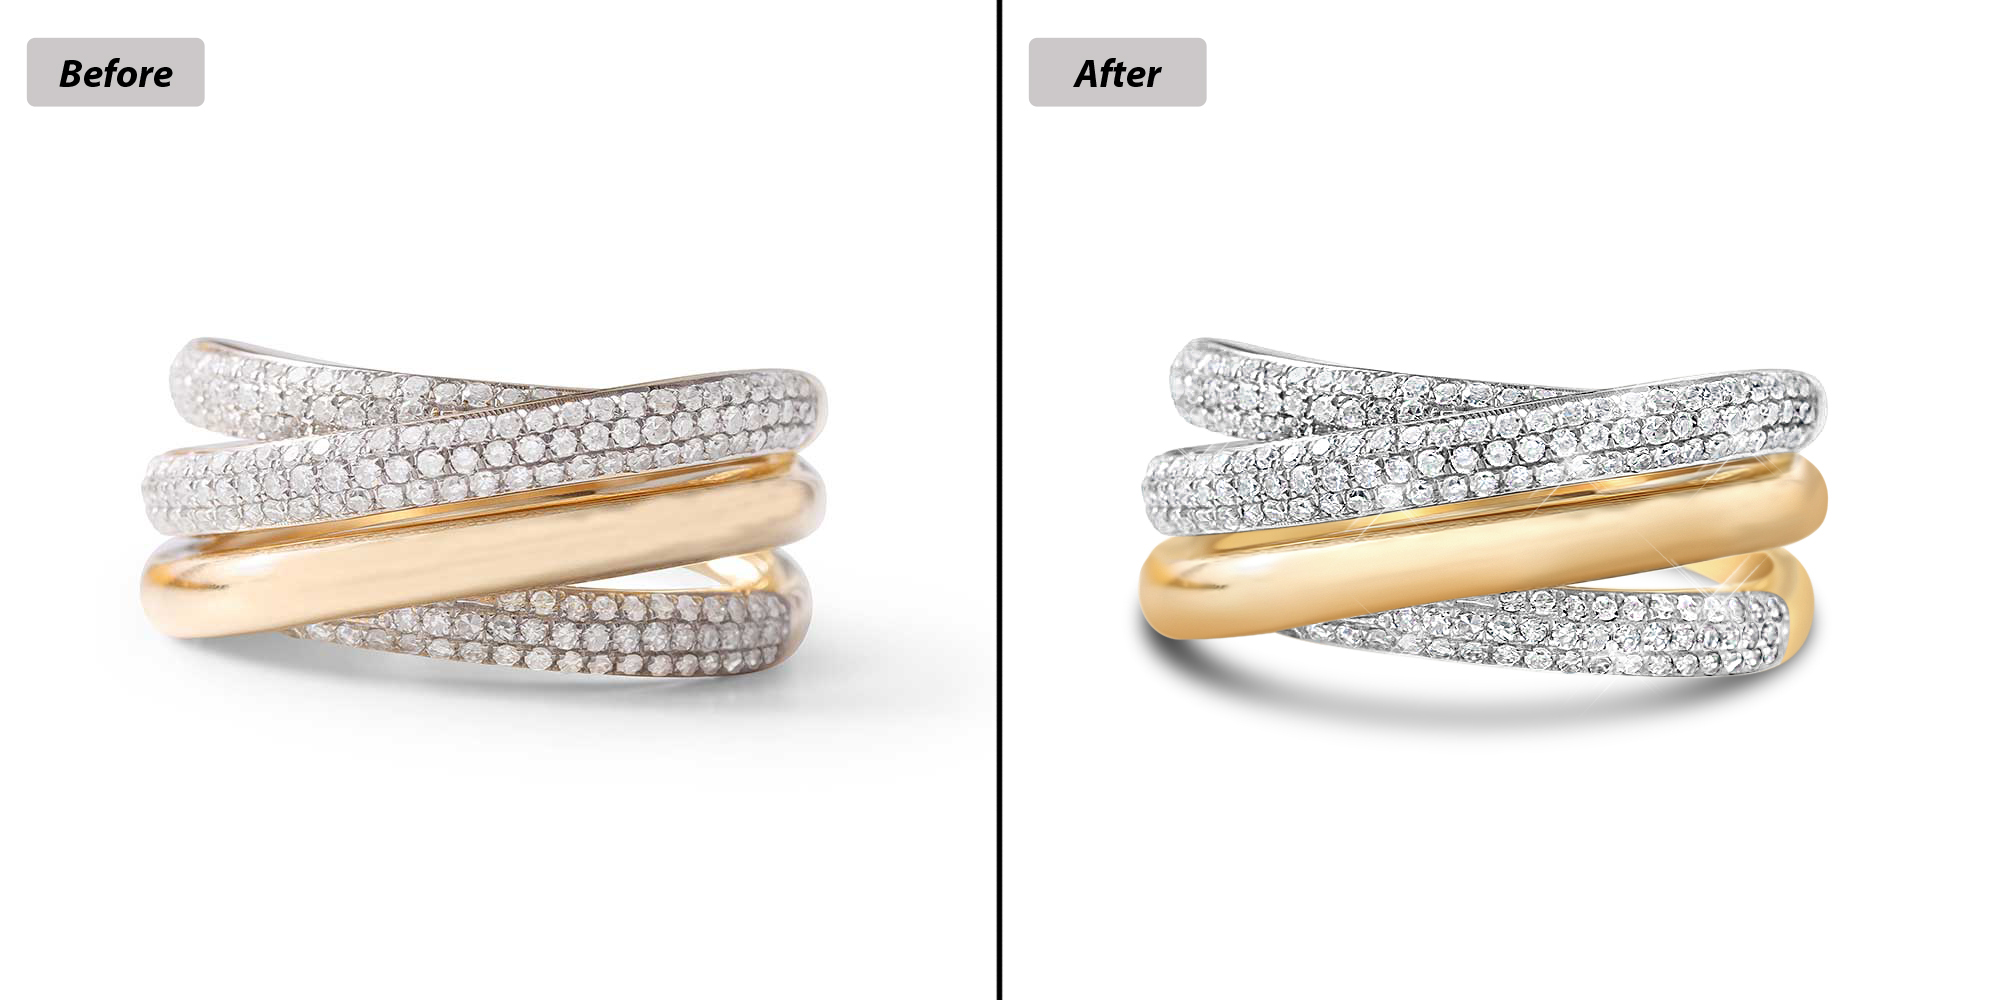 Clipping Charm_jewellery retouch 036